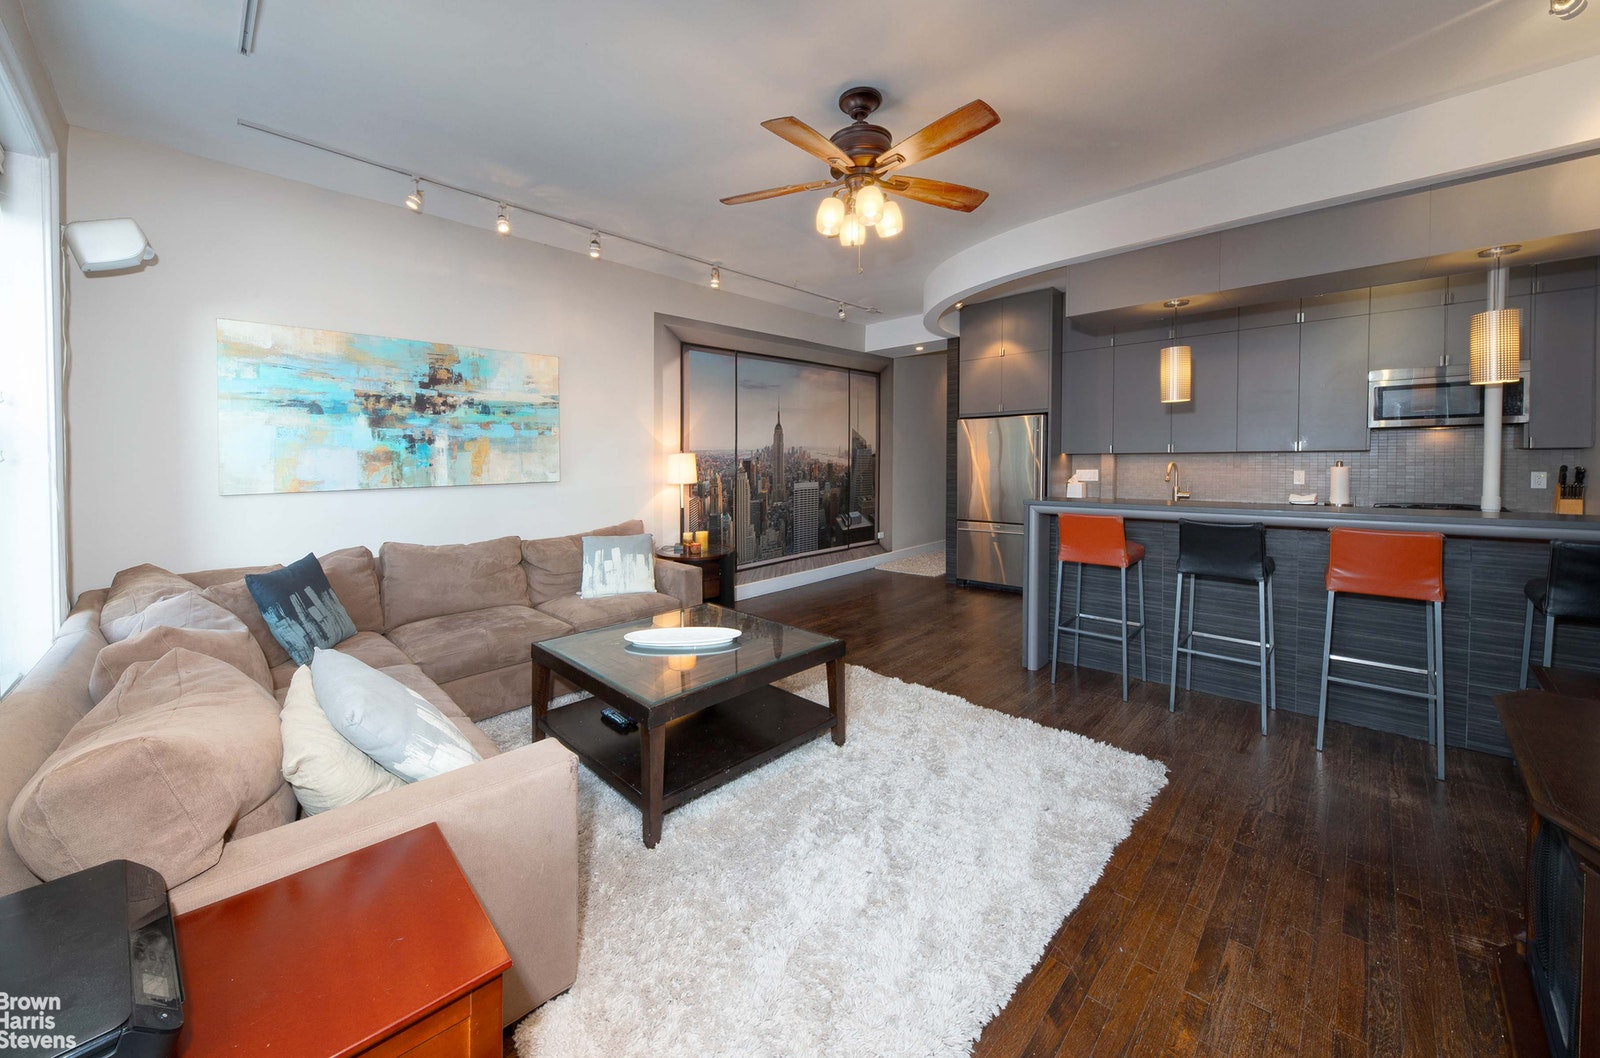 Apartment for sale at 300 West 109th Street, Apt 8H